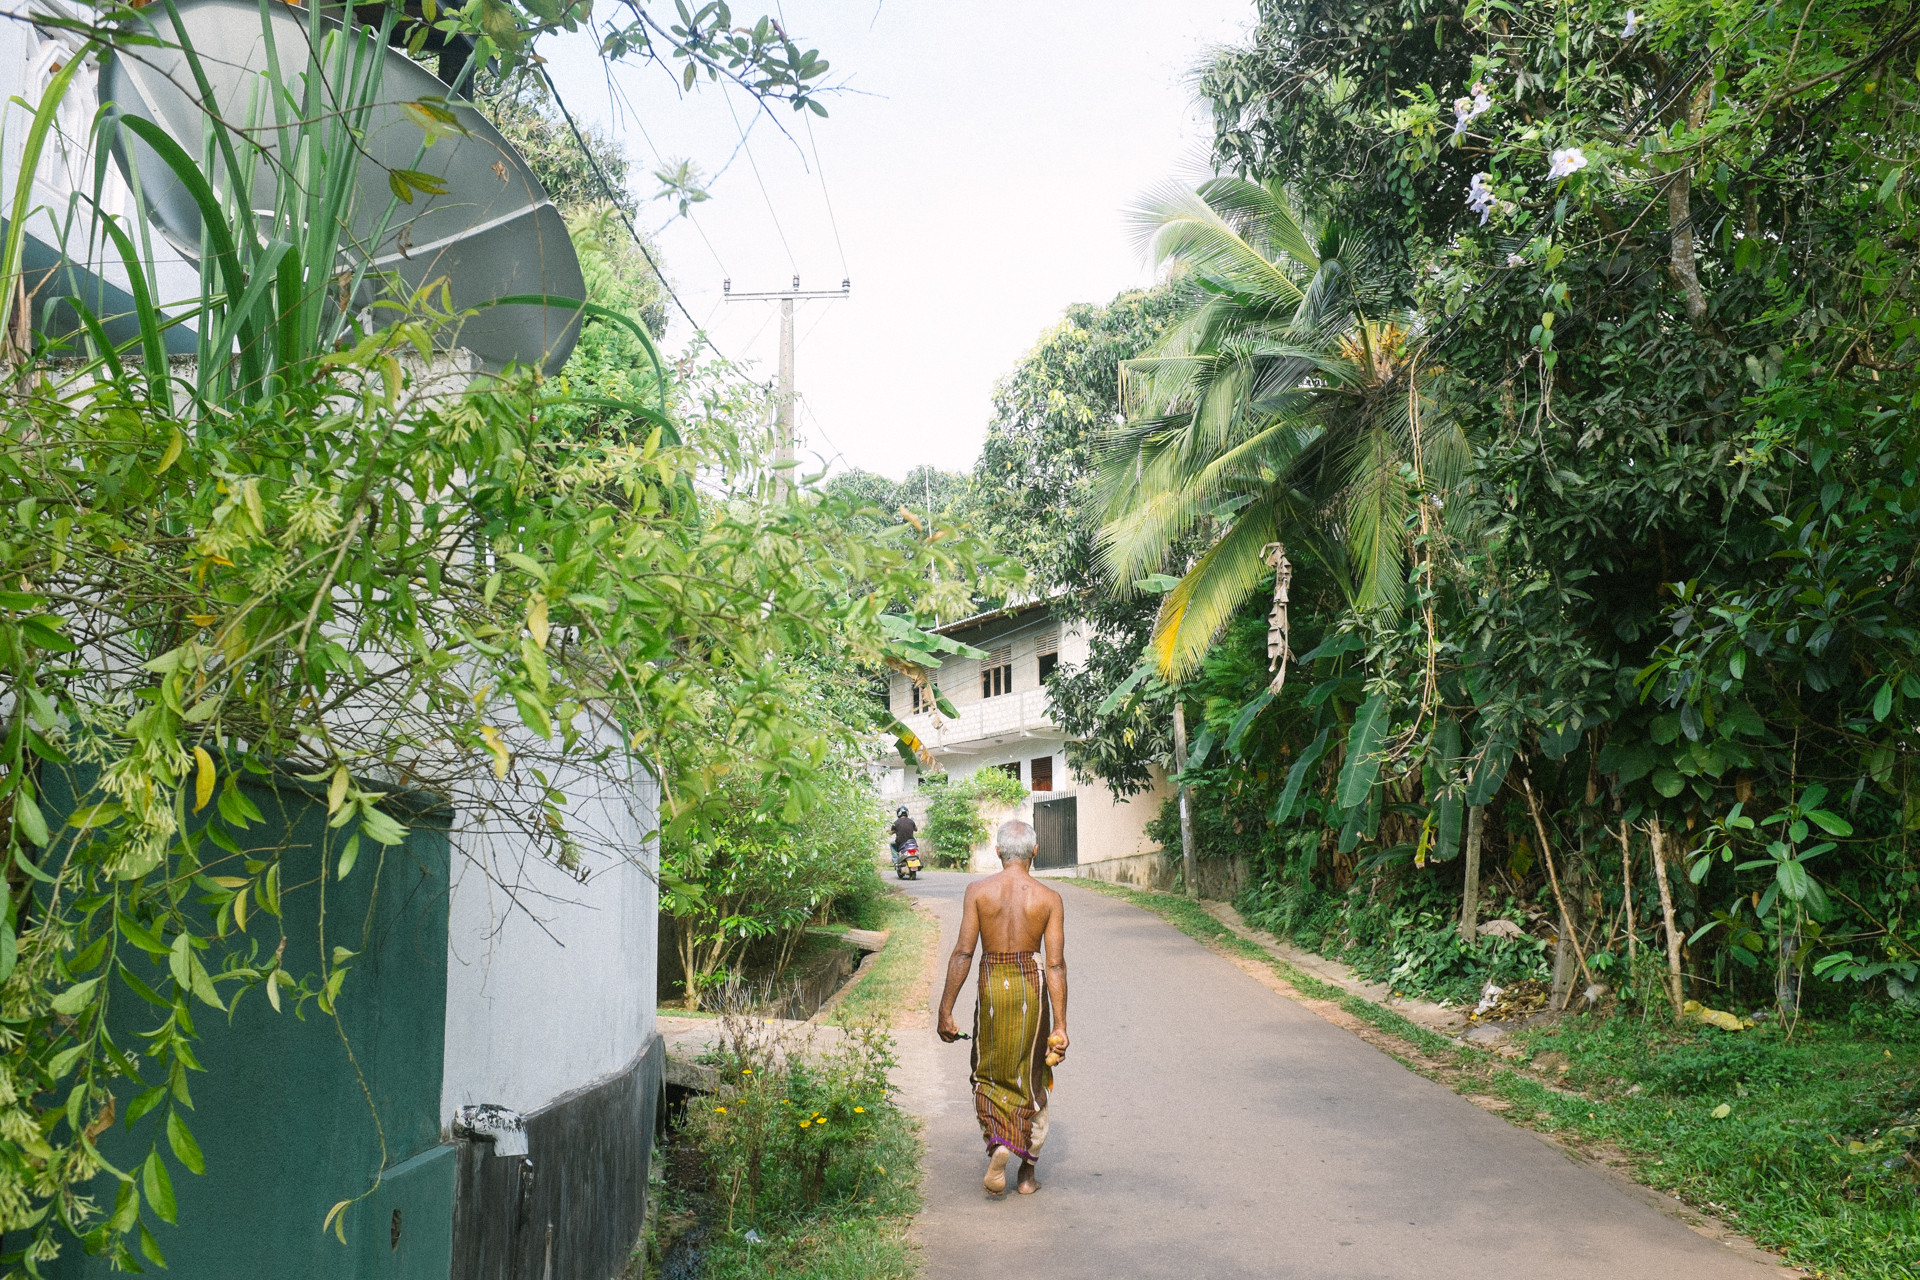 sri lanka, travel, man, walking